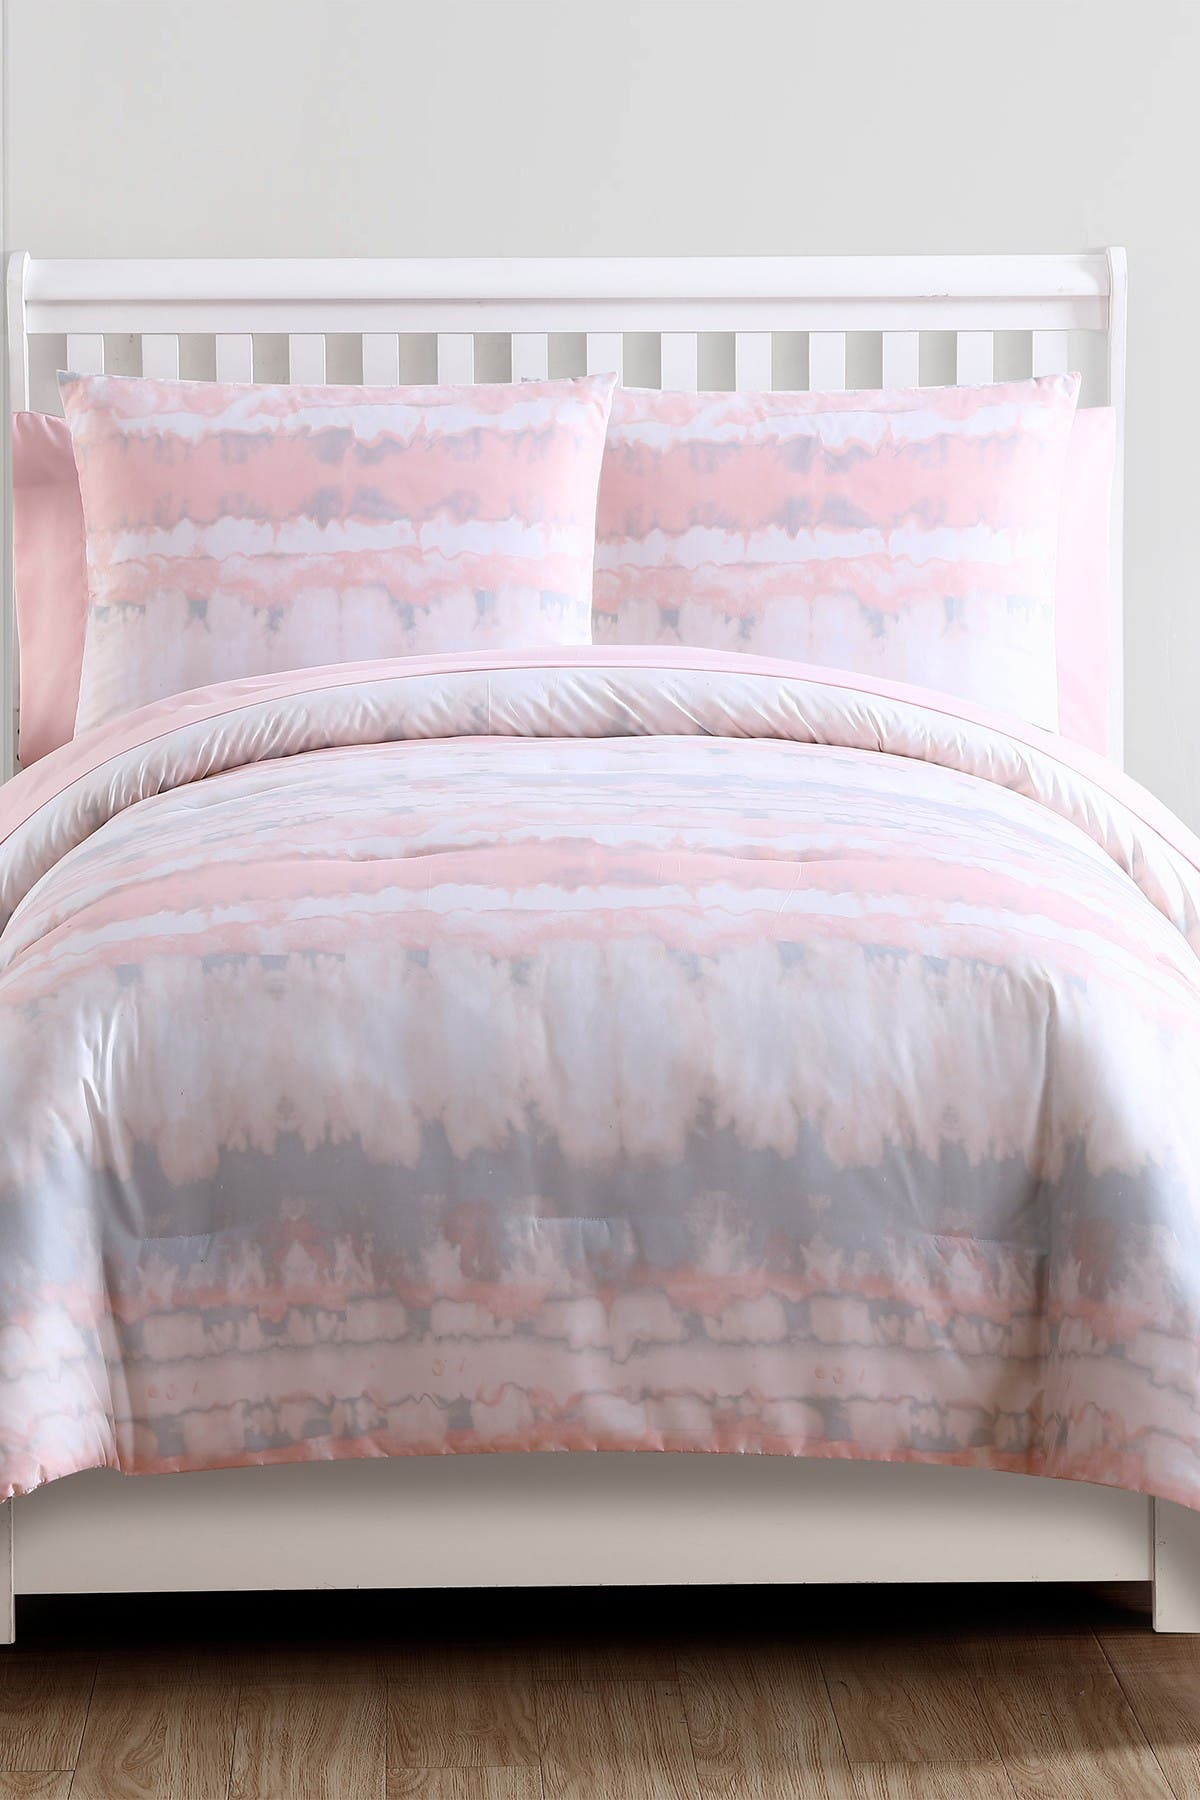 Image of VCNY HOME Blush Crush Tie-Dye Bed-in-a-Bag Comforter Set - Full